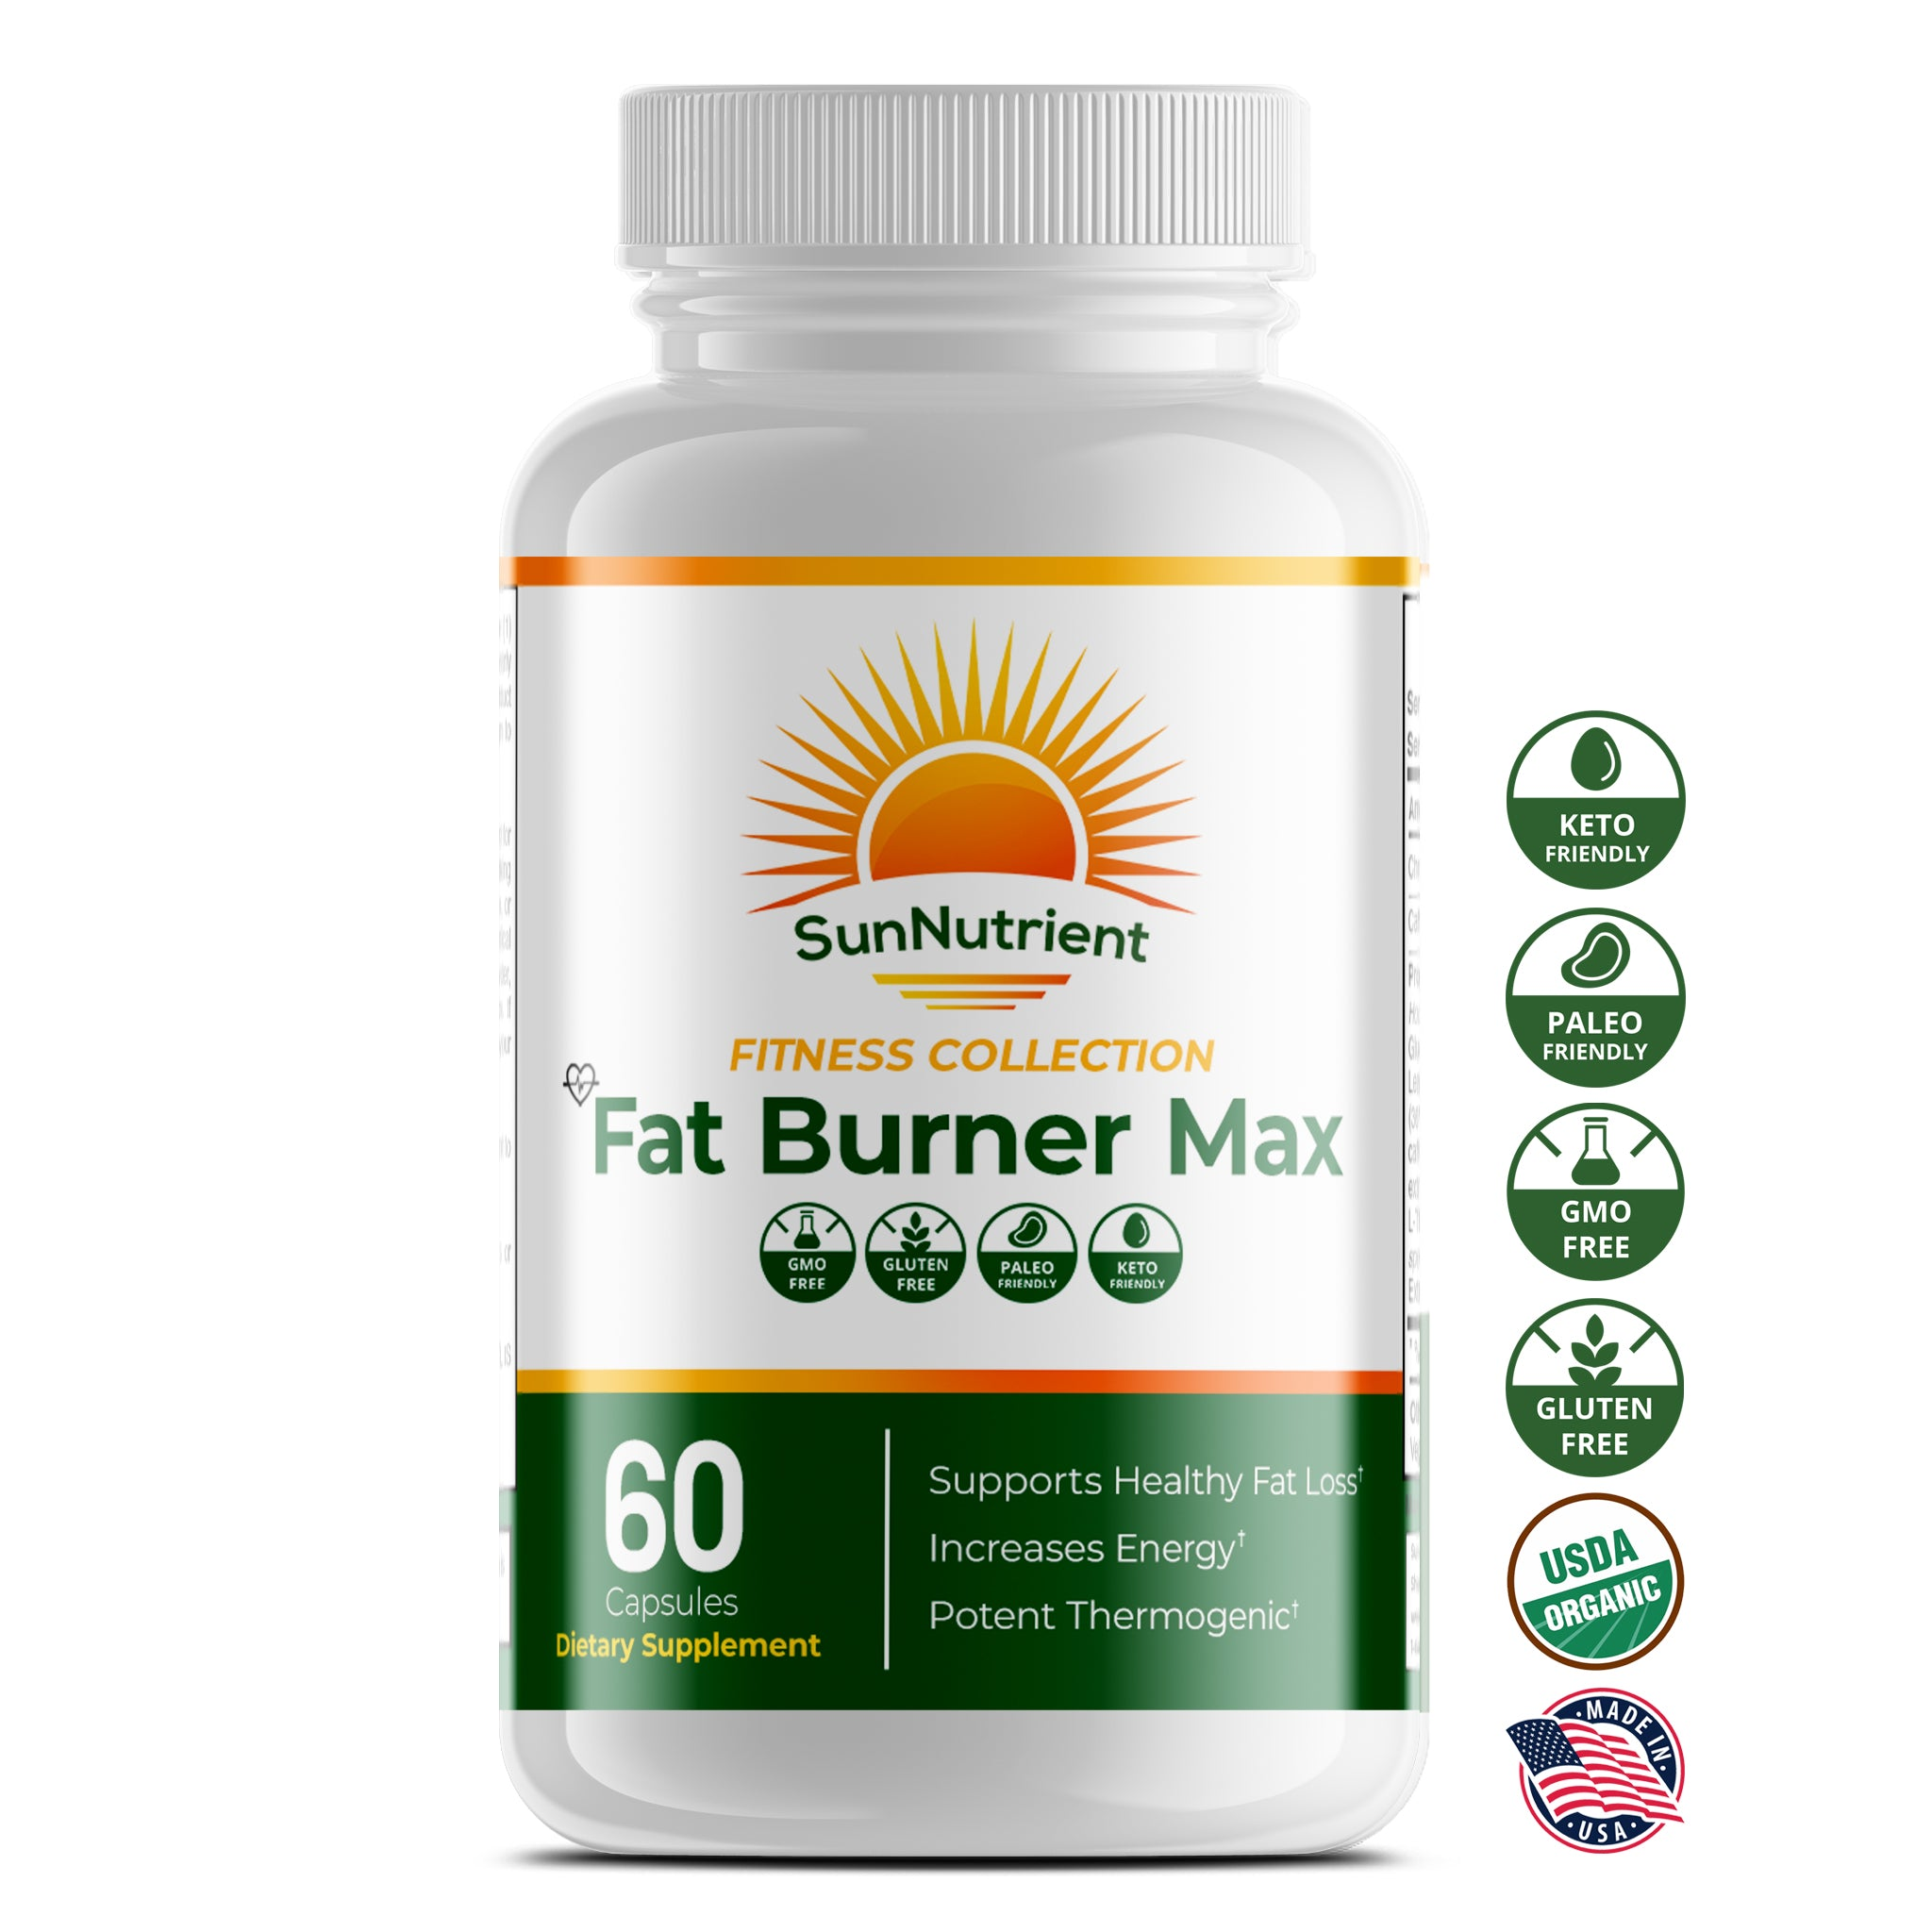 Fitness Collection - Fat Burner Max